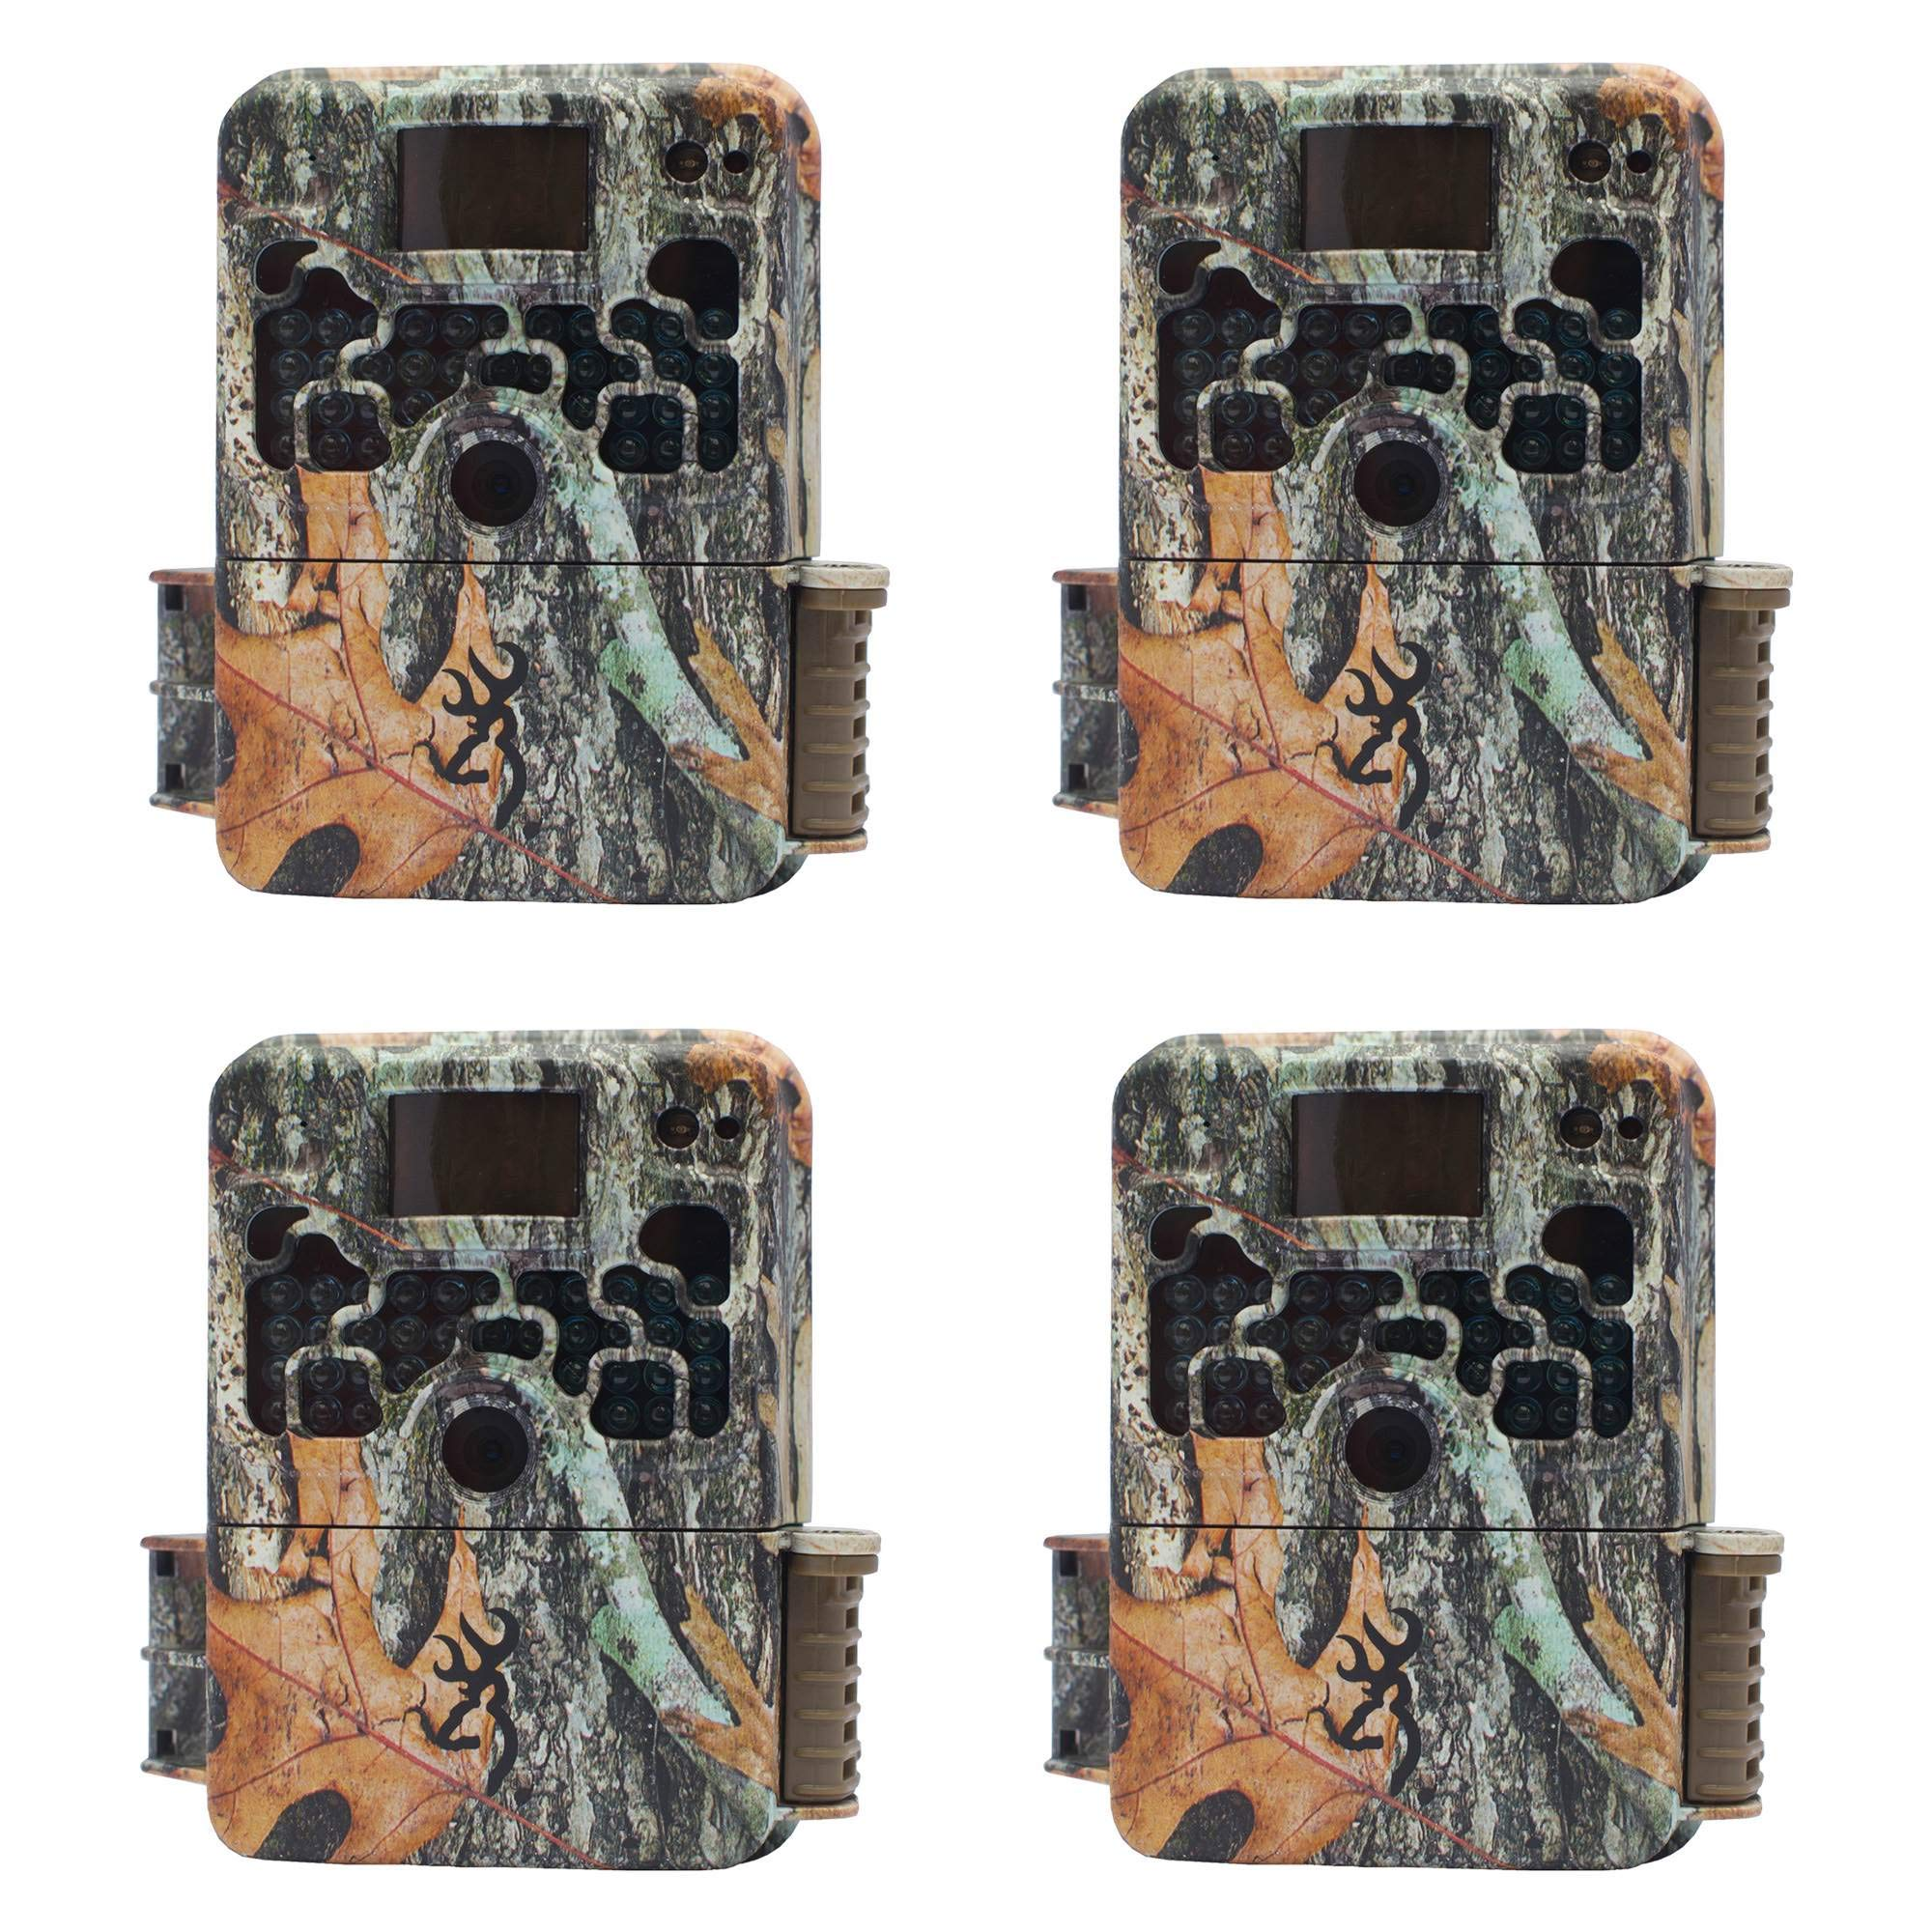 Browning Strike Force HD 850 Micro Trail Game Camera (16MP) | BTC5HD850 4 Pack by Browning Trail Cameras